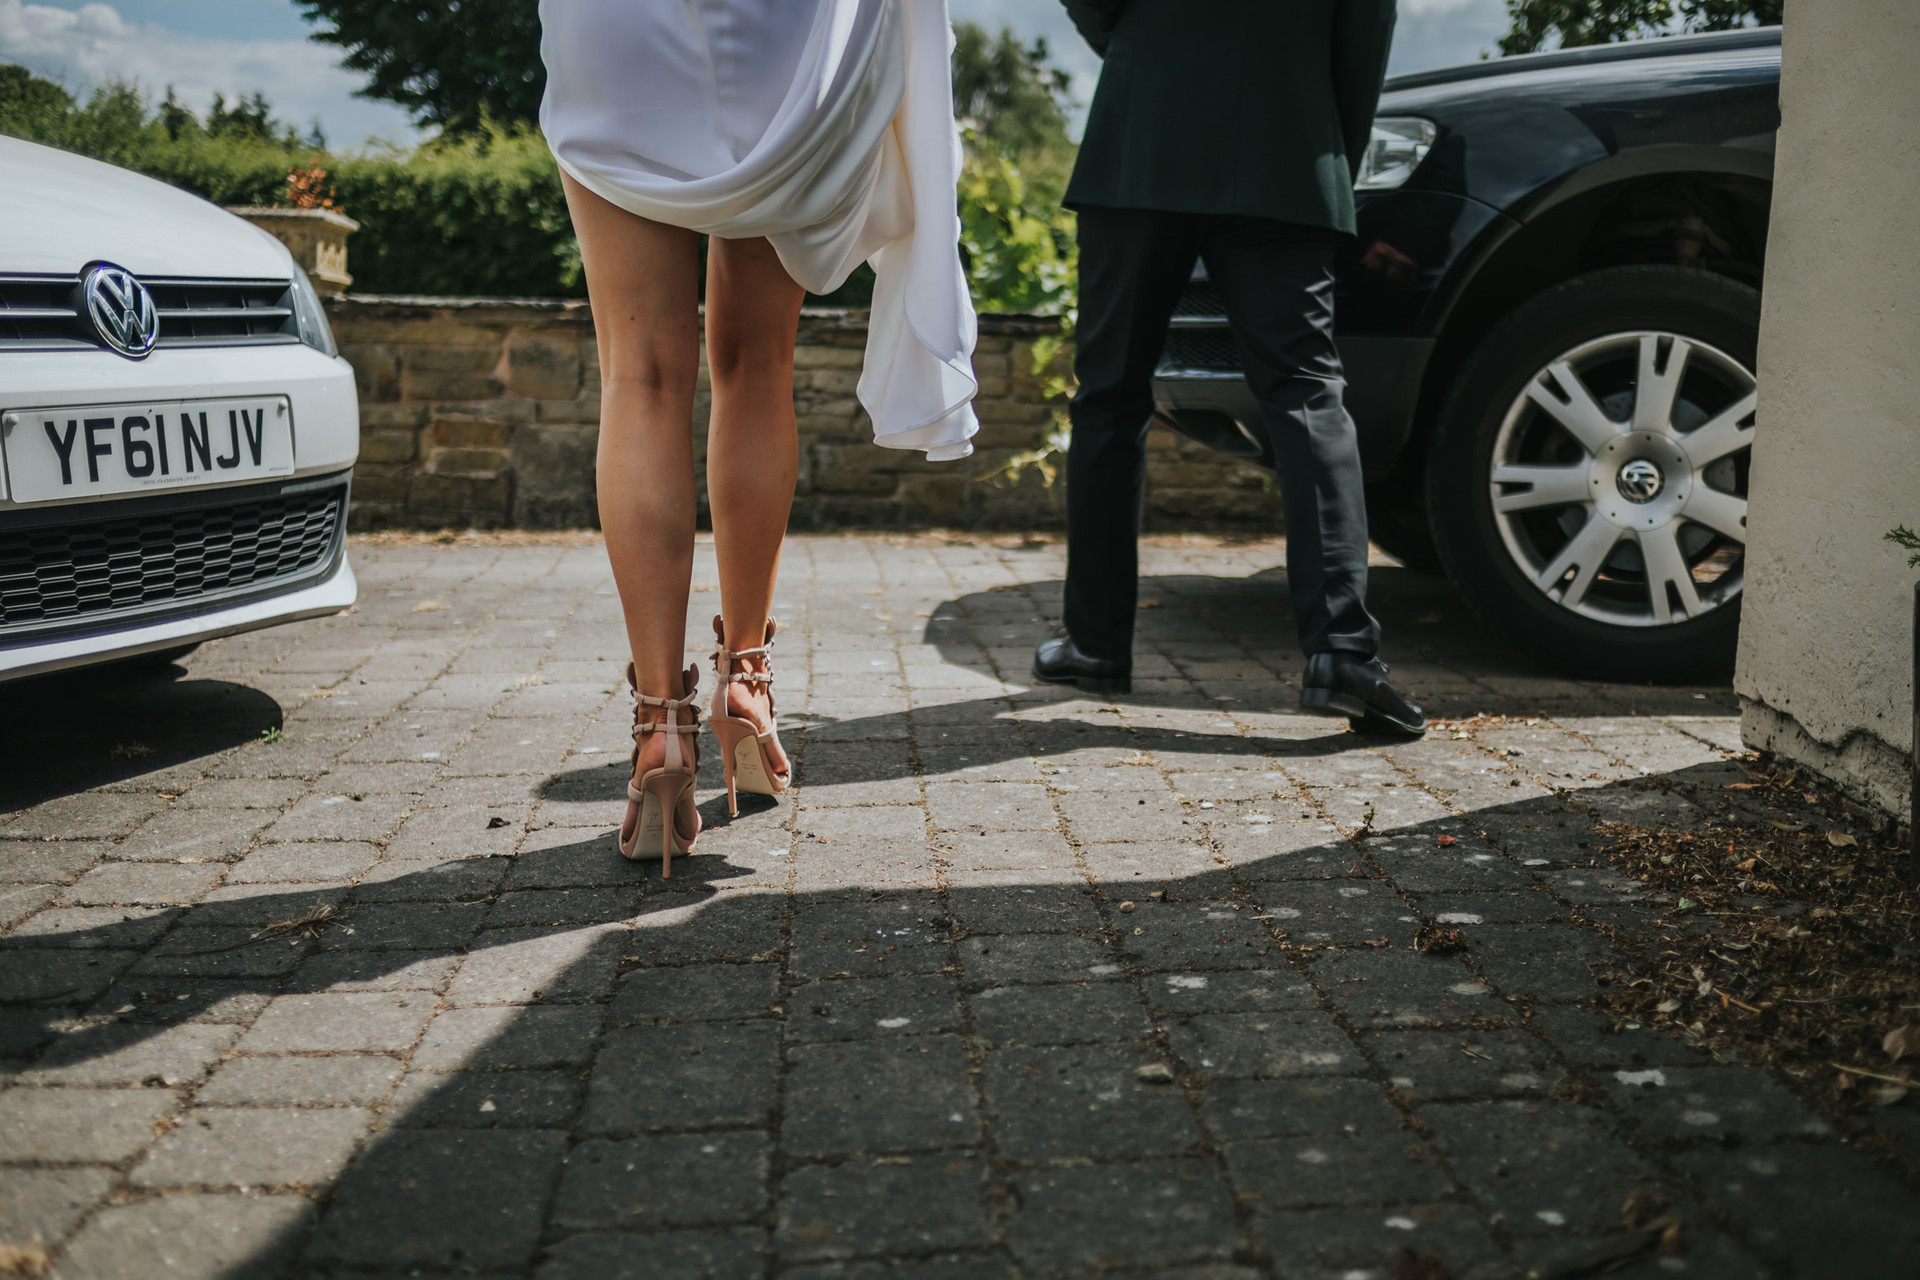 brides legs and amazing wedding shoes as she walks down the driveway